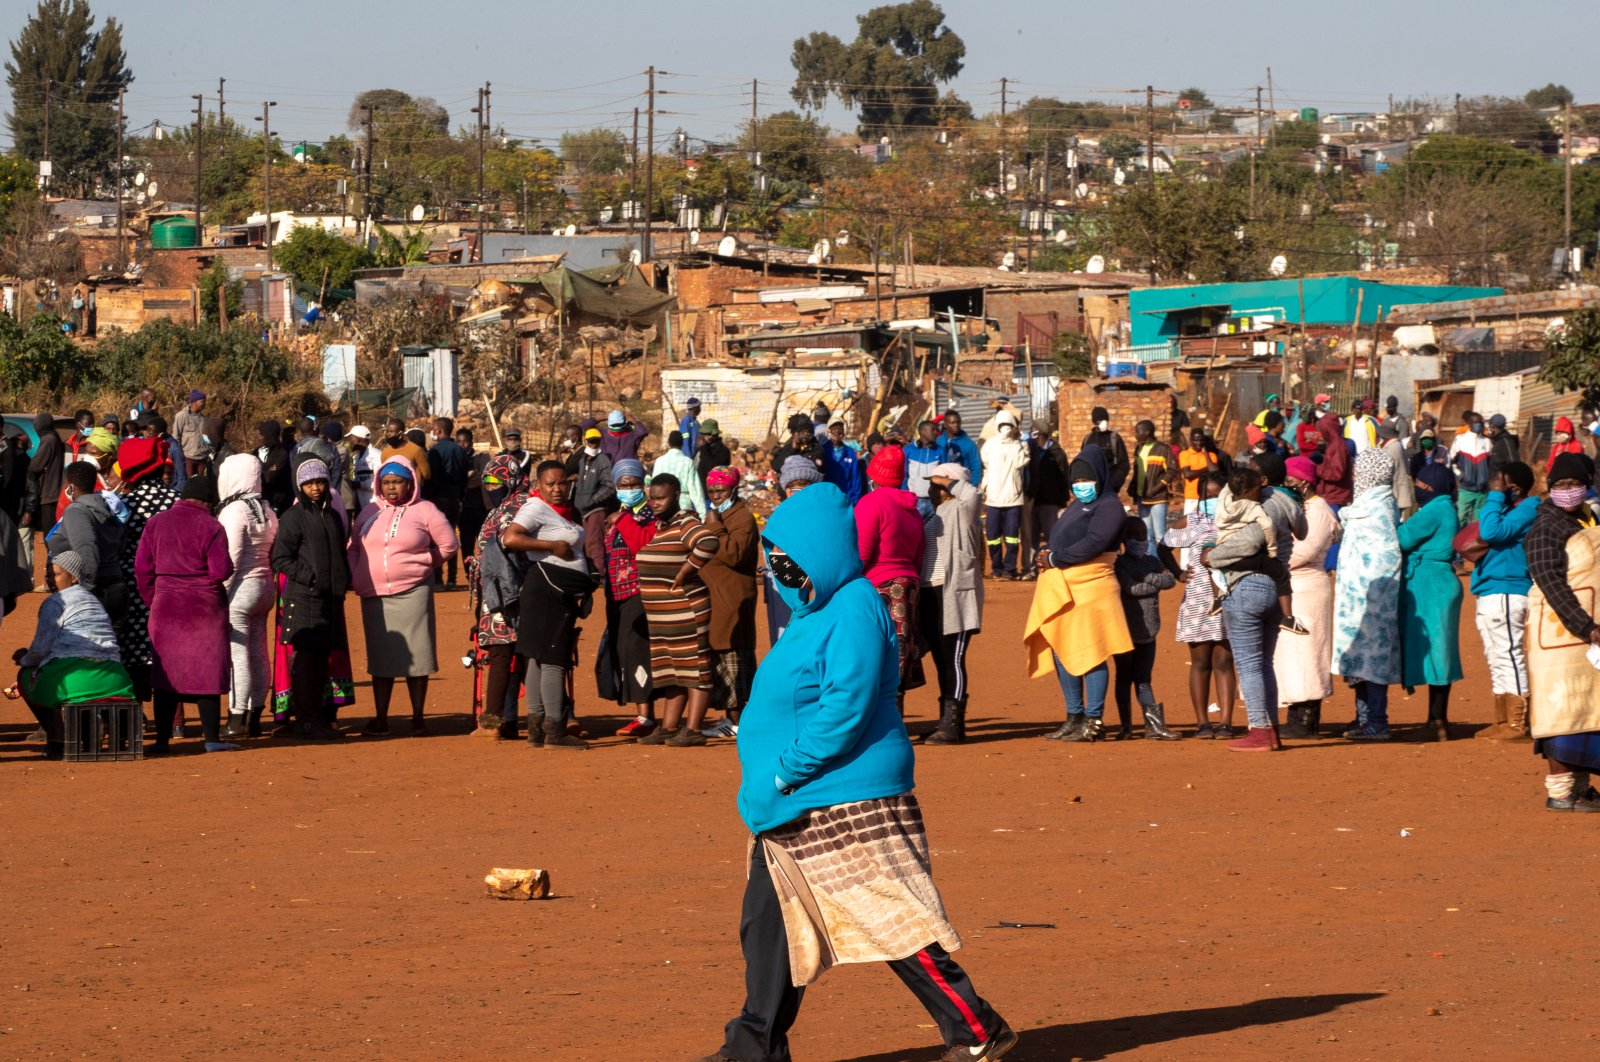 A woman walks across a dusty soccer field as people affected by the coronavirus' economic downturn line up to receive food donations, Pretoria, South Africa, May 20, 2020. (AP Photo)